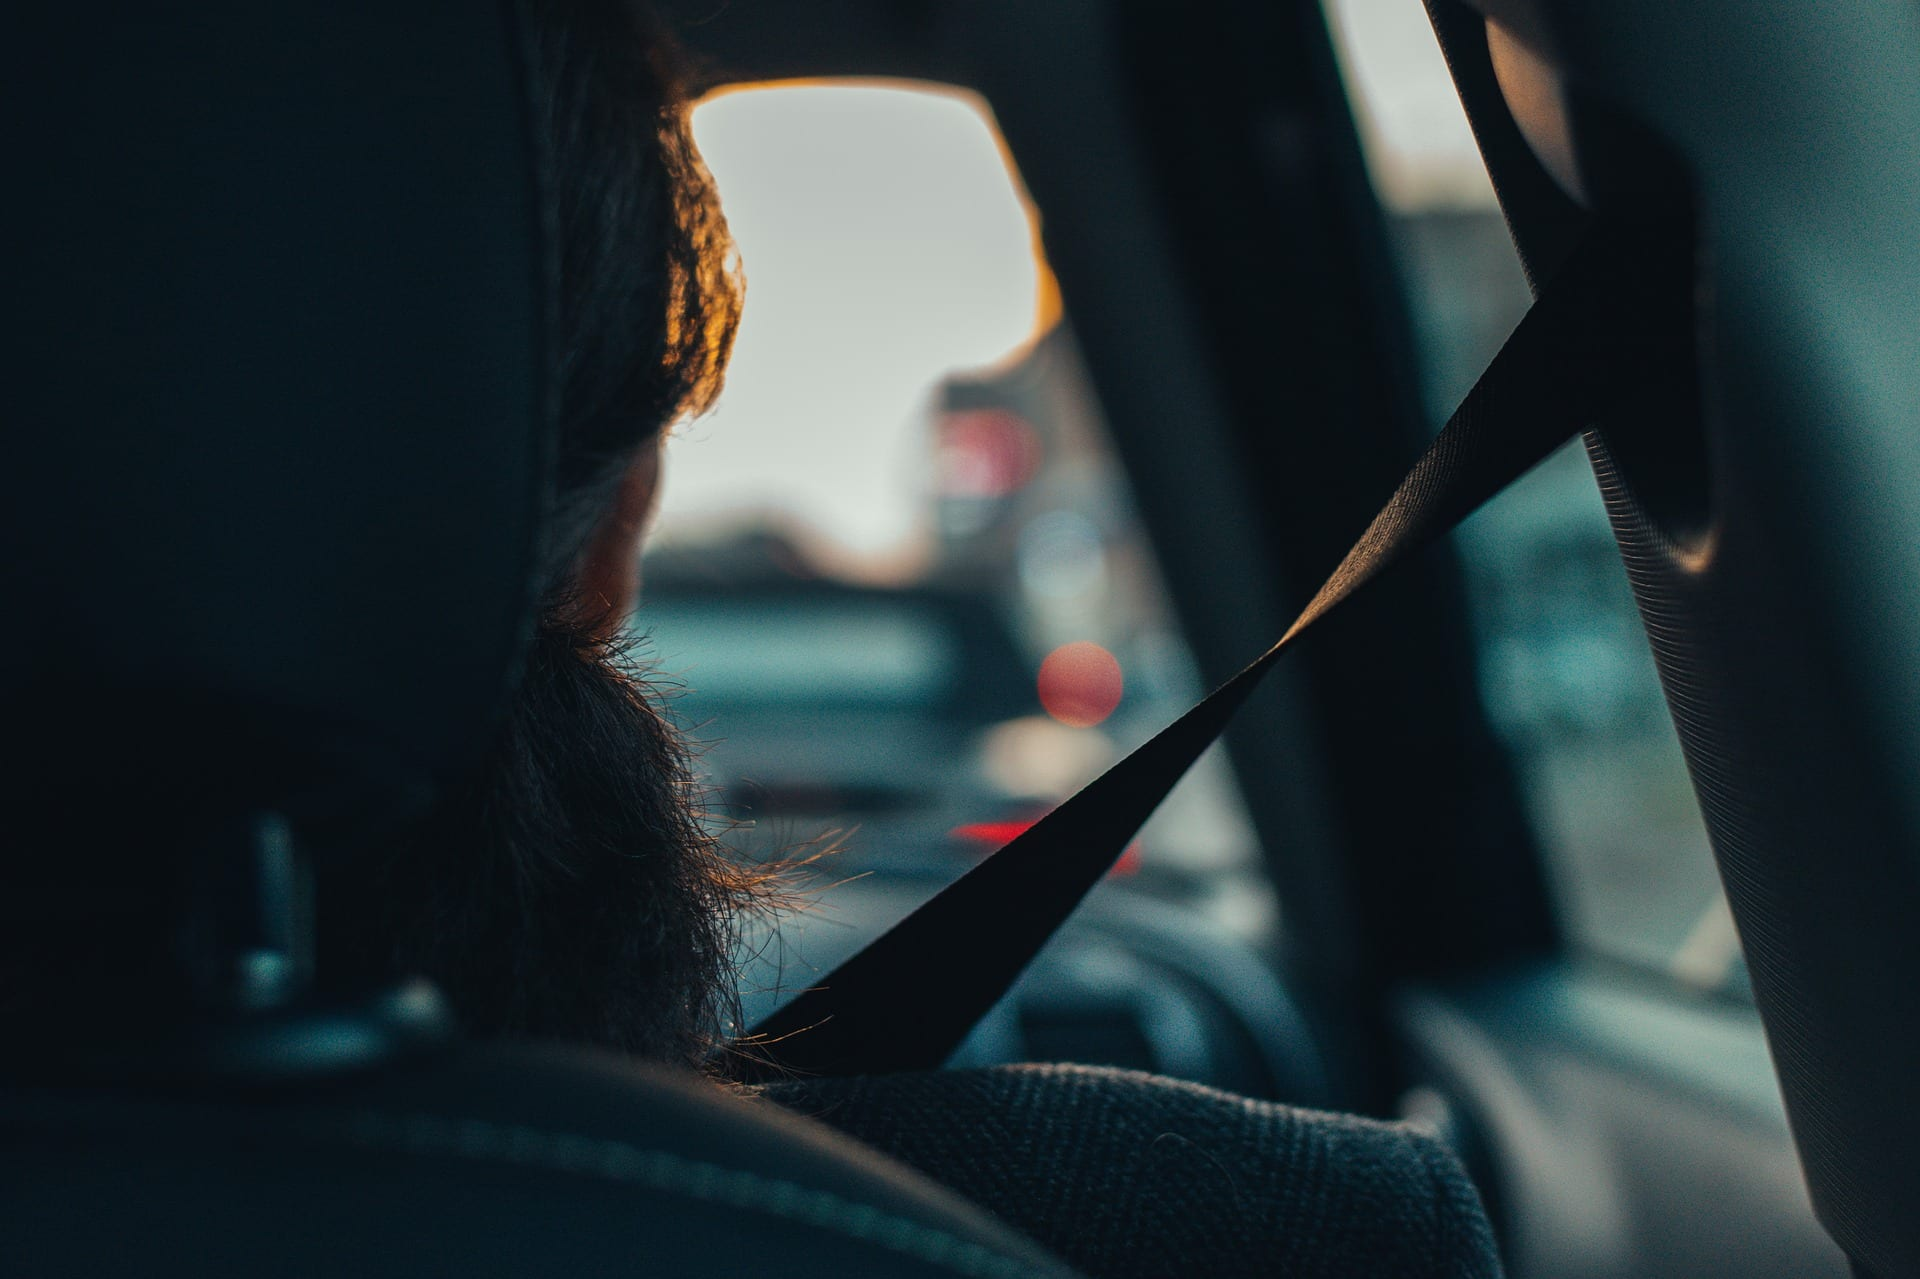 A woman is pictured with a shoulder seat belt in a motor vehicle